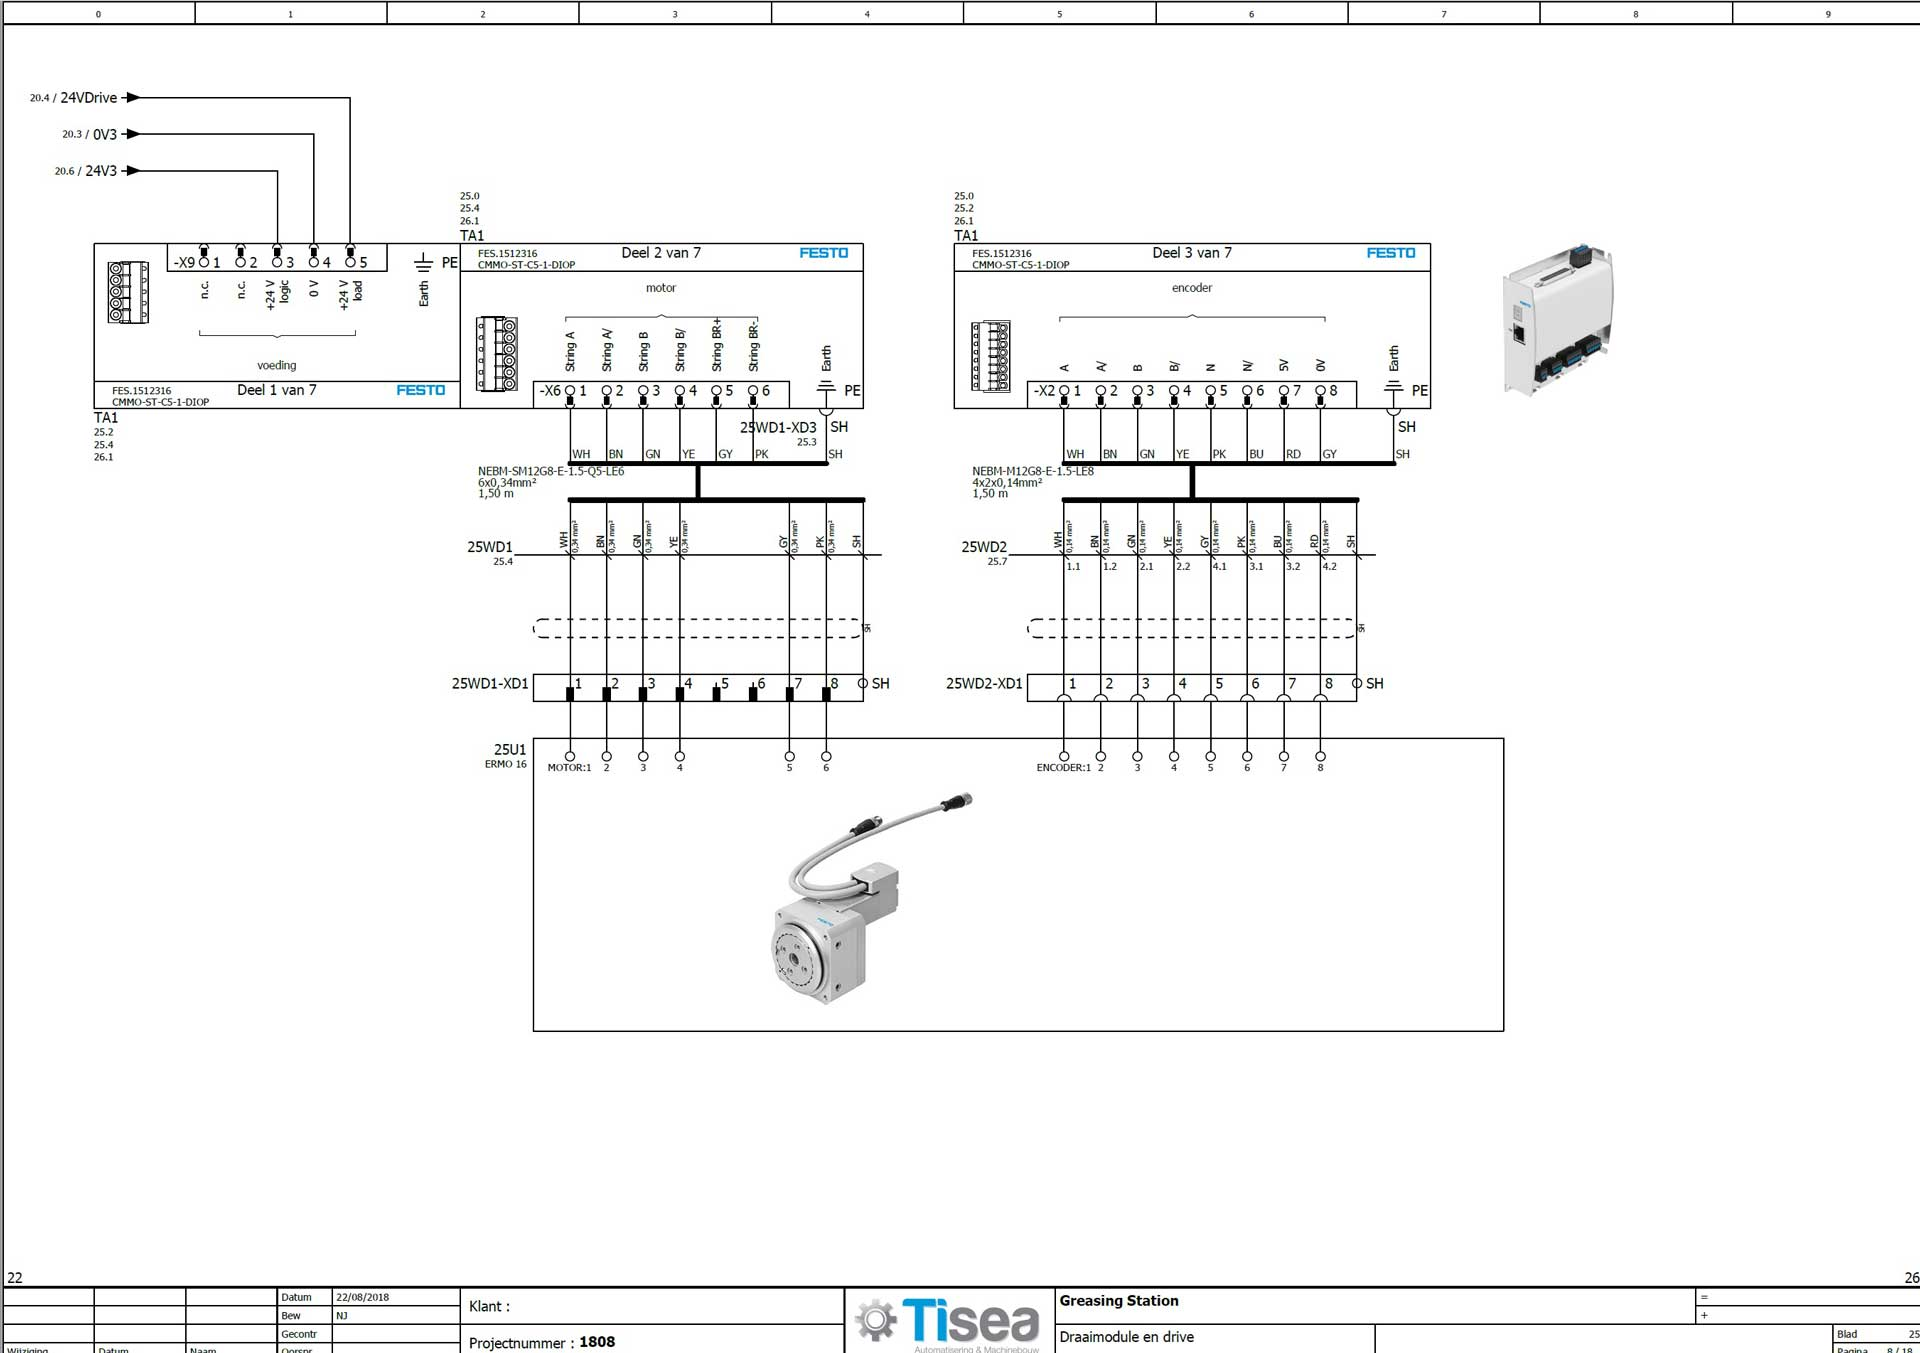 Tisea-greasing-station-schema-2